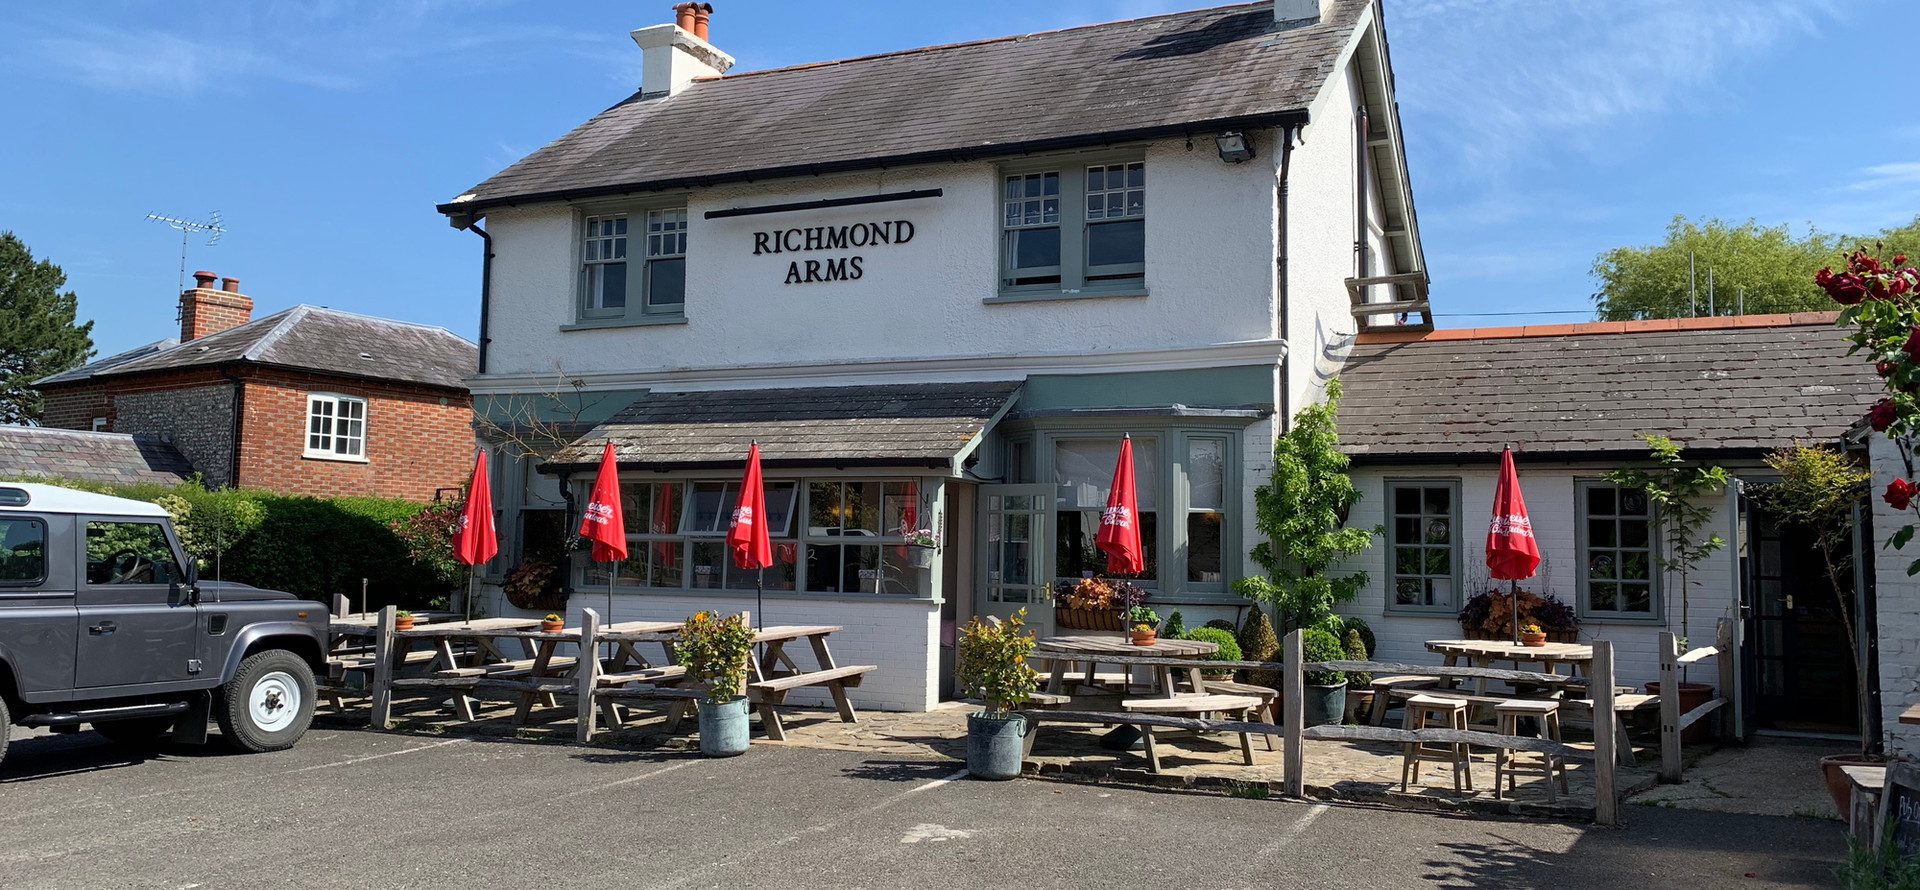 The front of The Richmond Arms in West Ashling